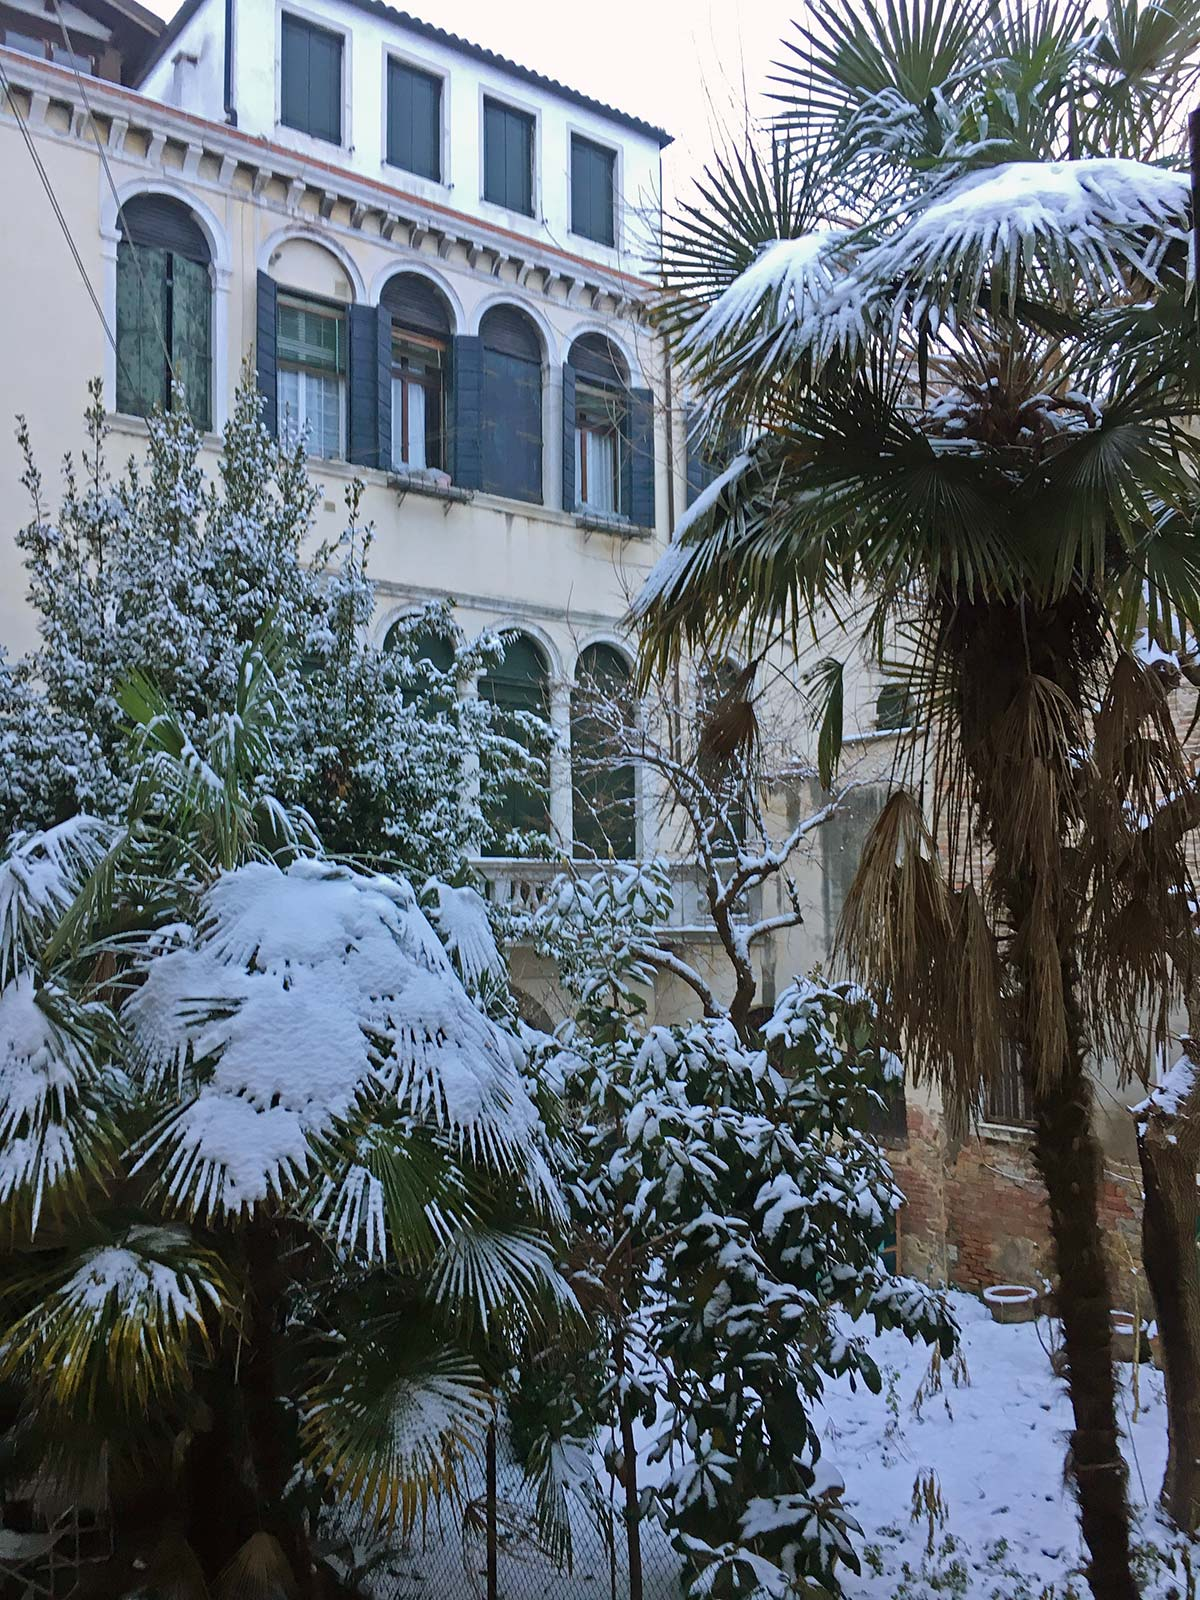 view from the twin bedroom on the courtyard after a rare winter snowfall